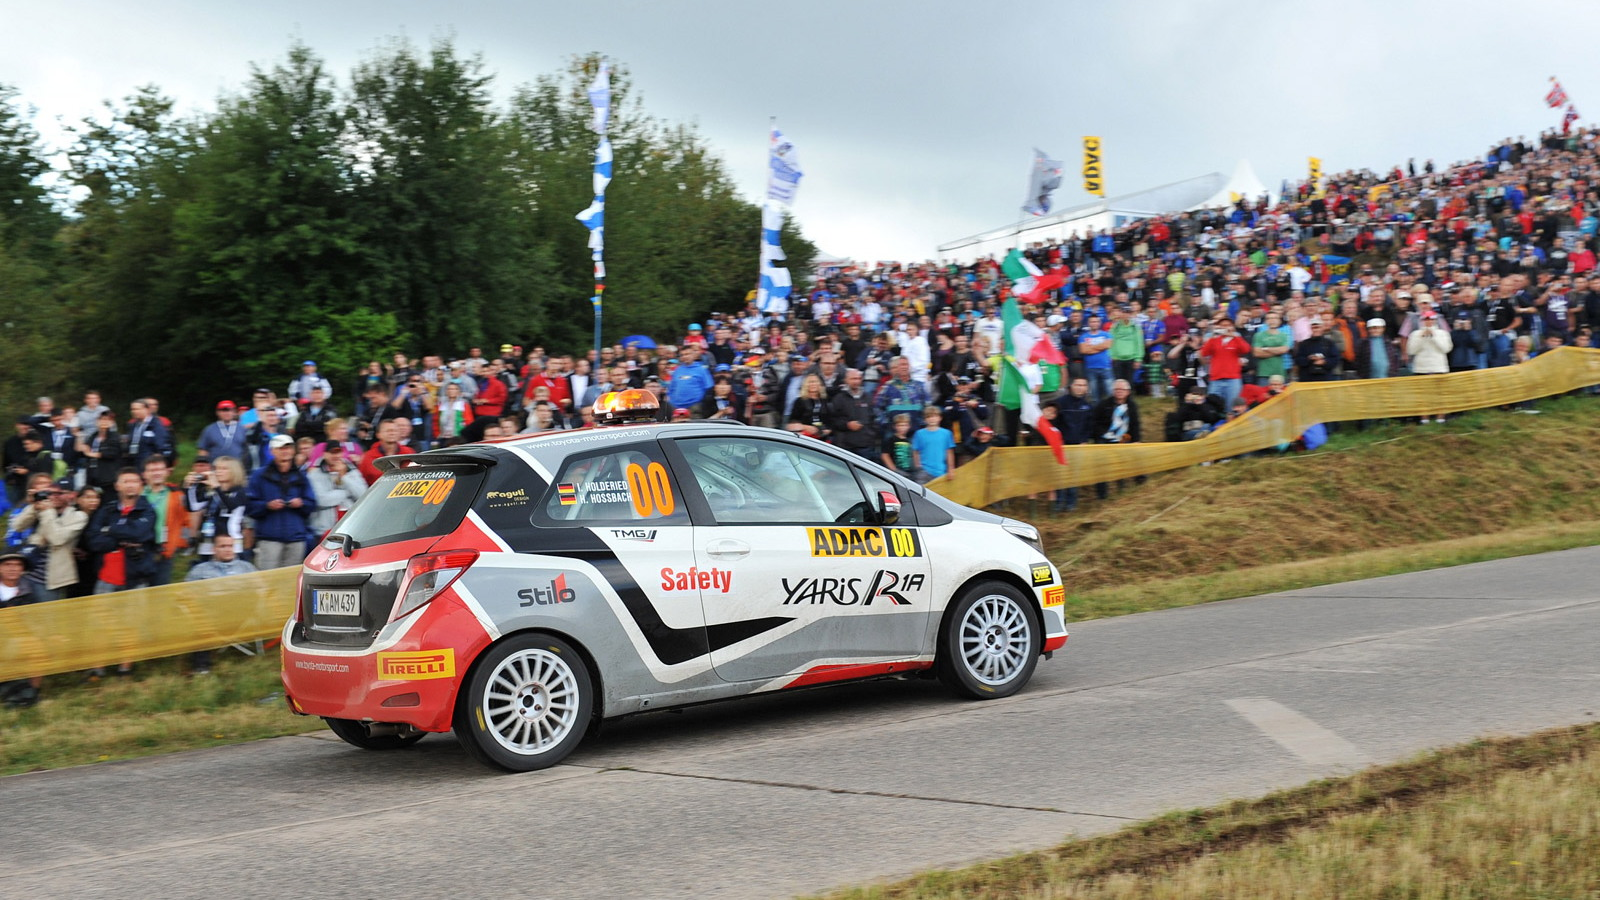 2013 Toyota Yaris R1A rally car